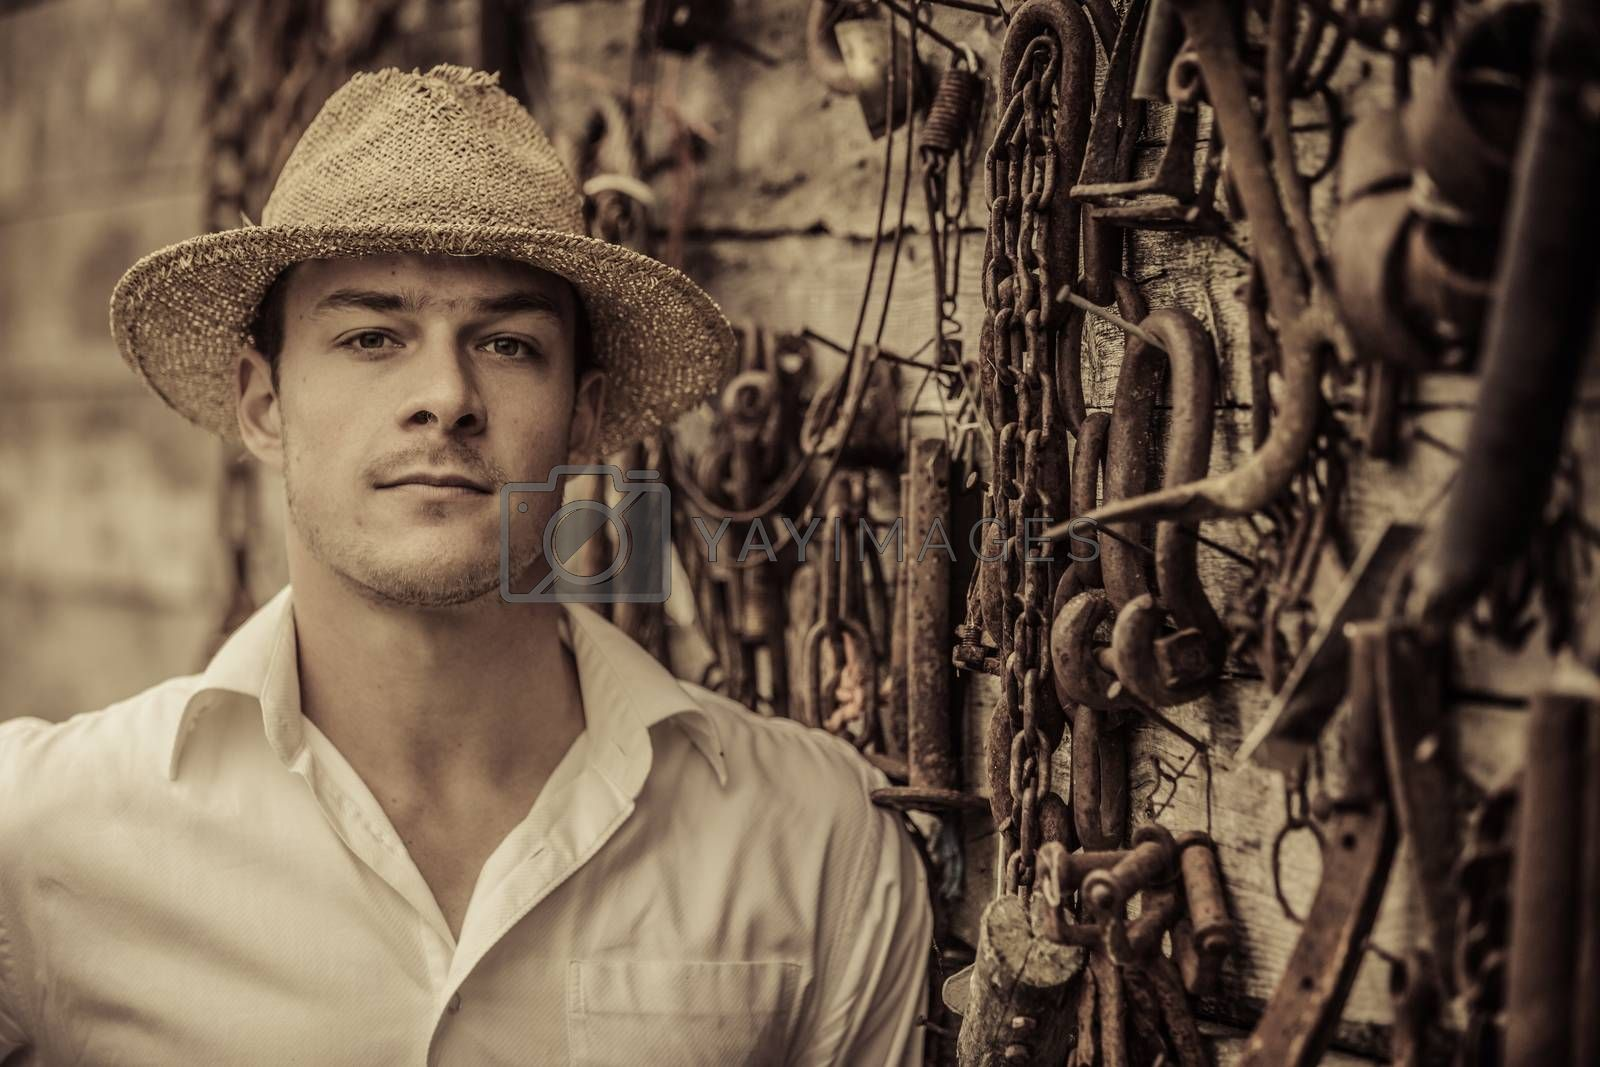 Farmer Portrait in front of a Wall Full of Tools by aetb